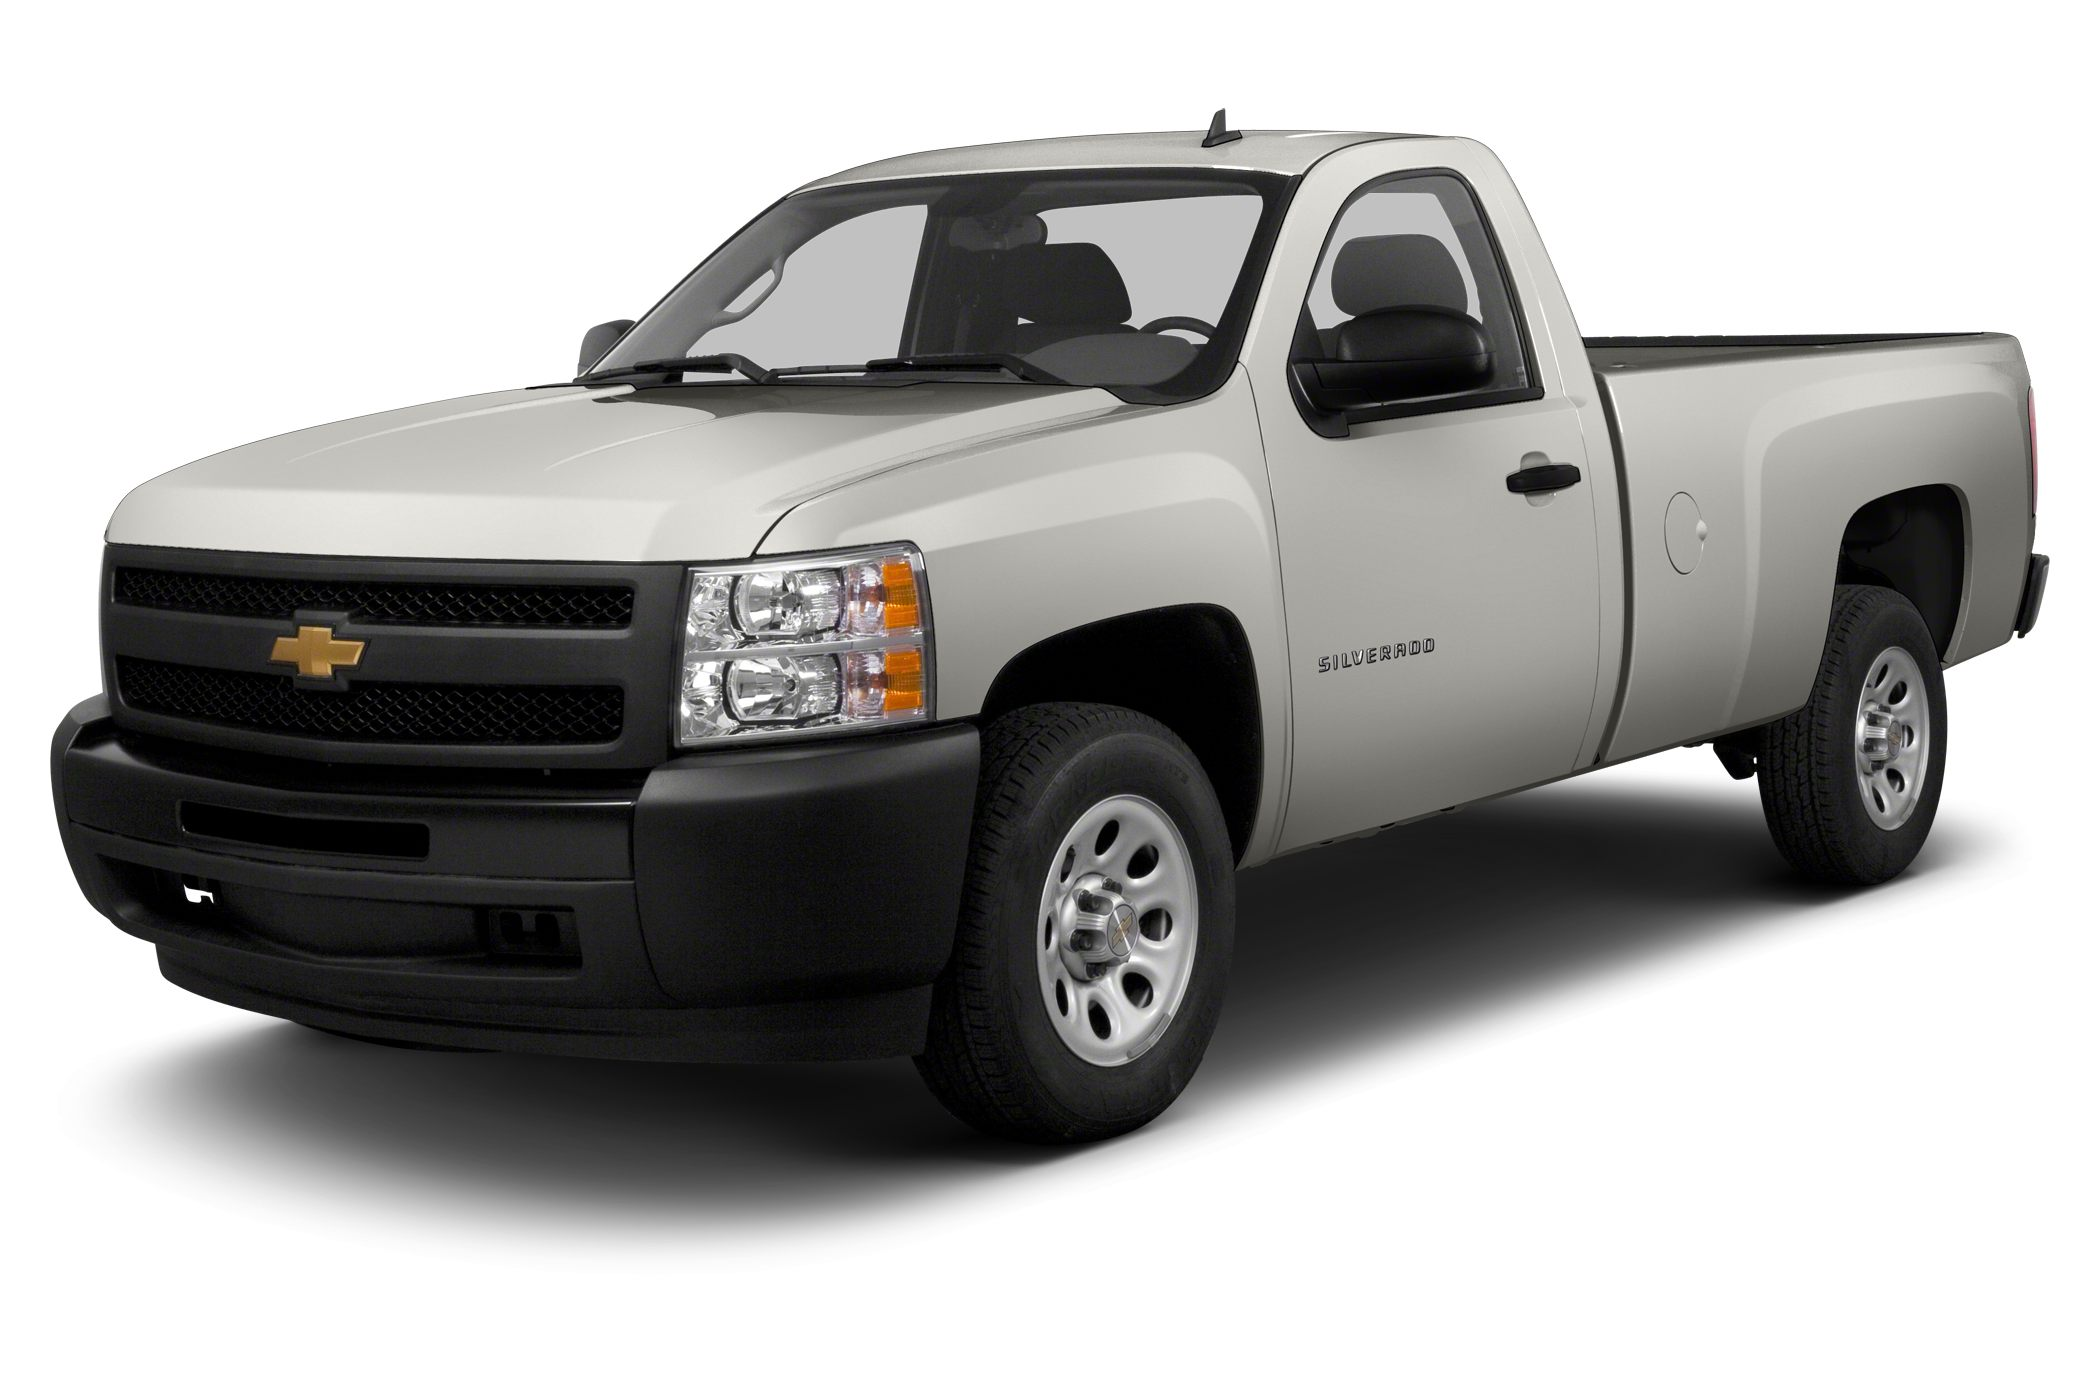 2013 Chevrolet Silverado 1500 Work Truck Regular Cab Pickup for sale in Norwich for $19,995 with 3,432 miles